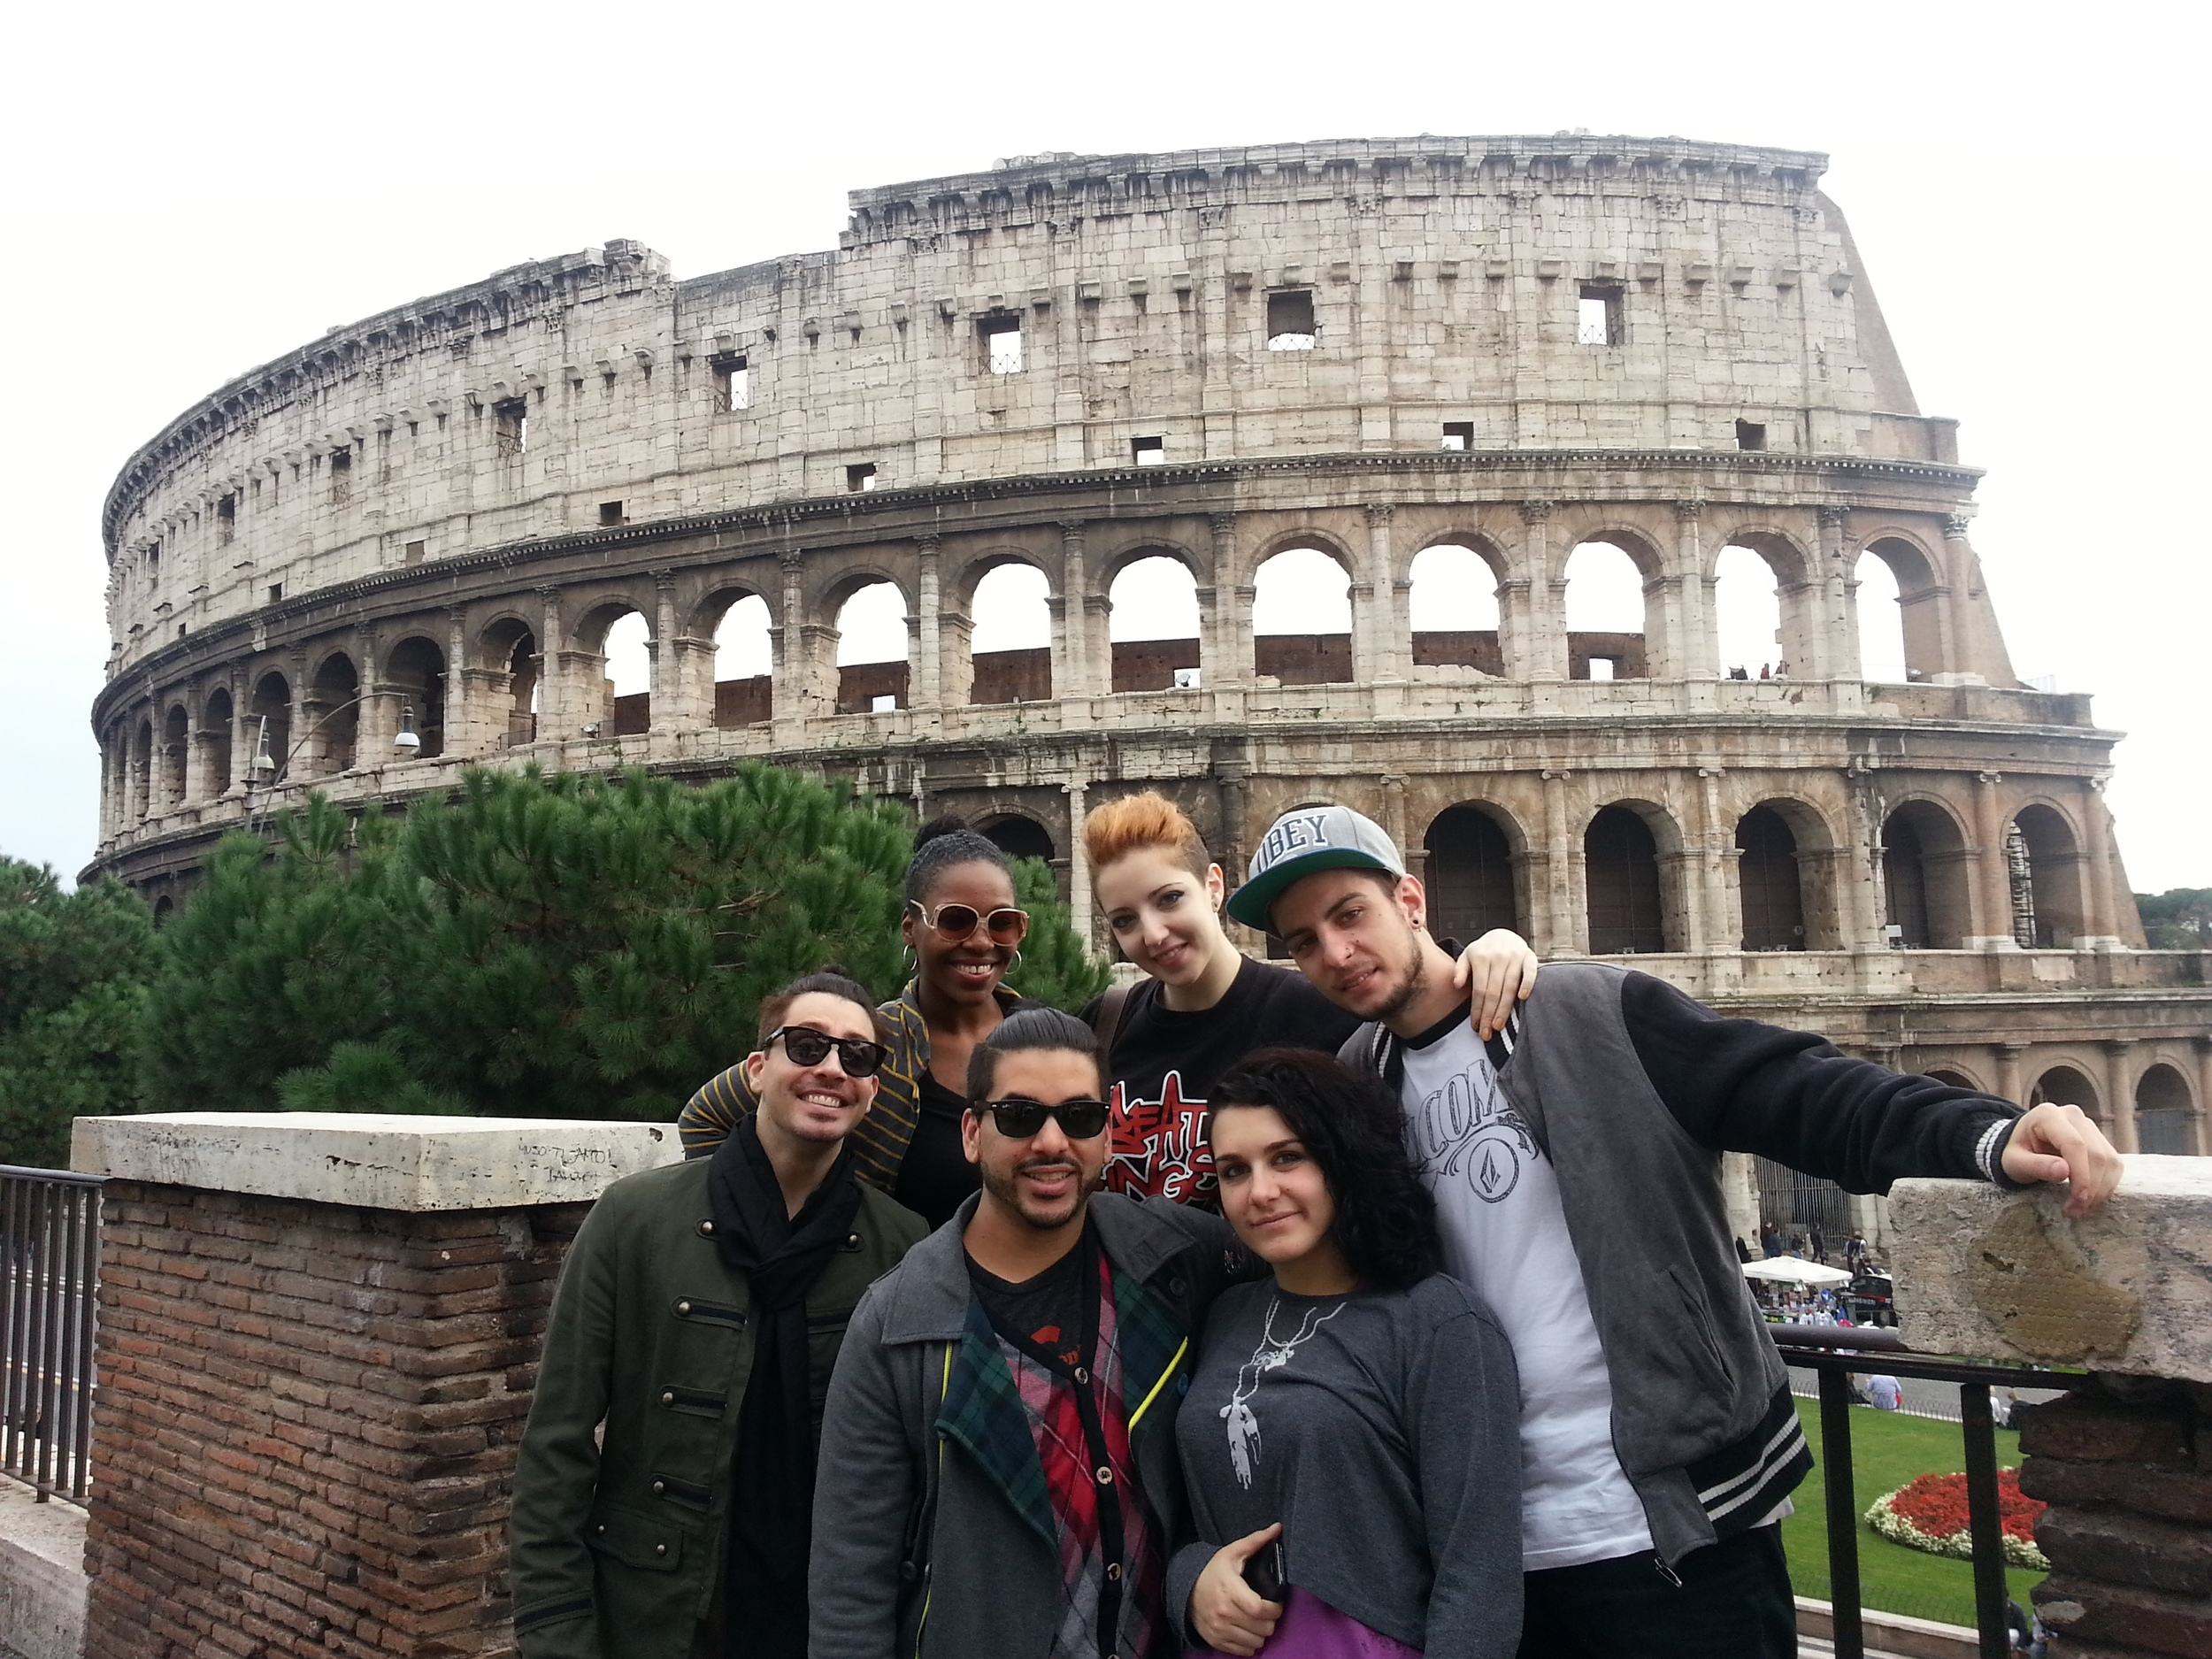 enjoying a day off in Rome!